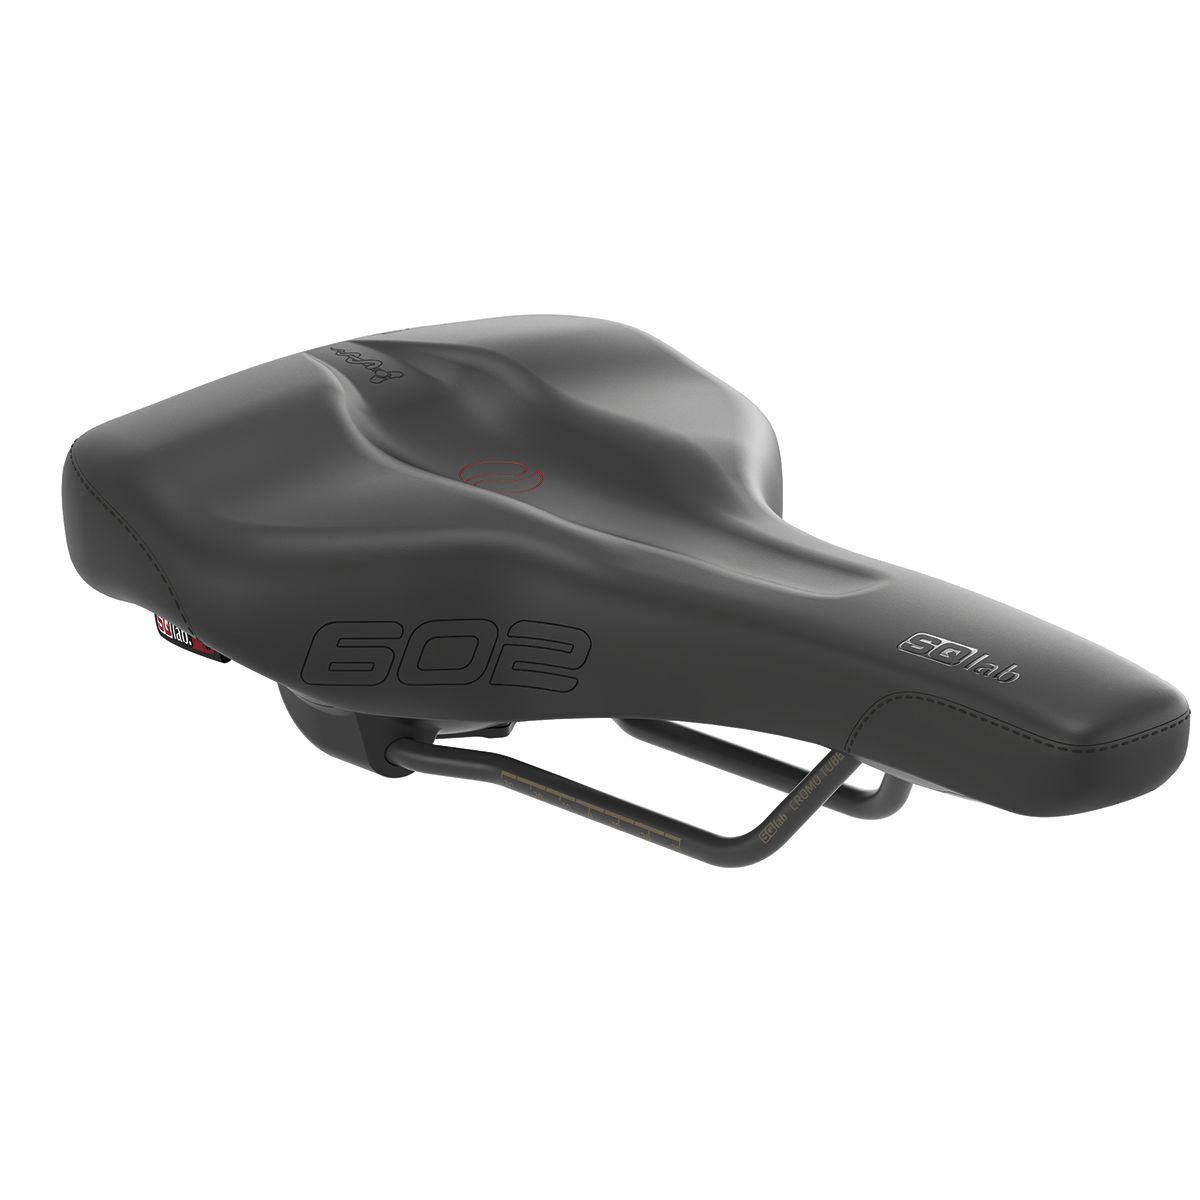 602 Ergolux active Infinergy Comfort touring saddle